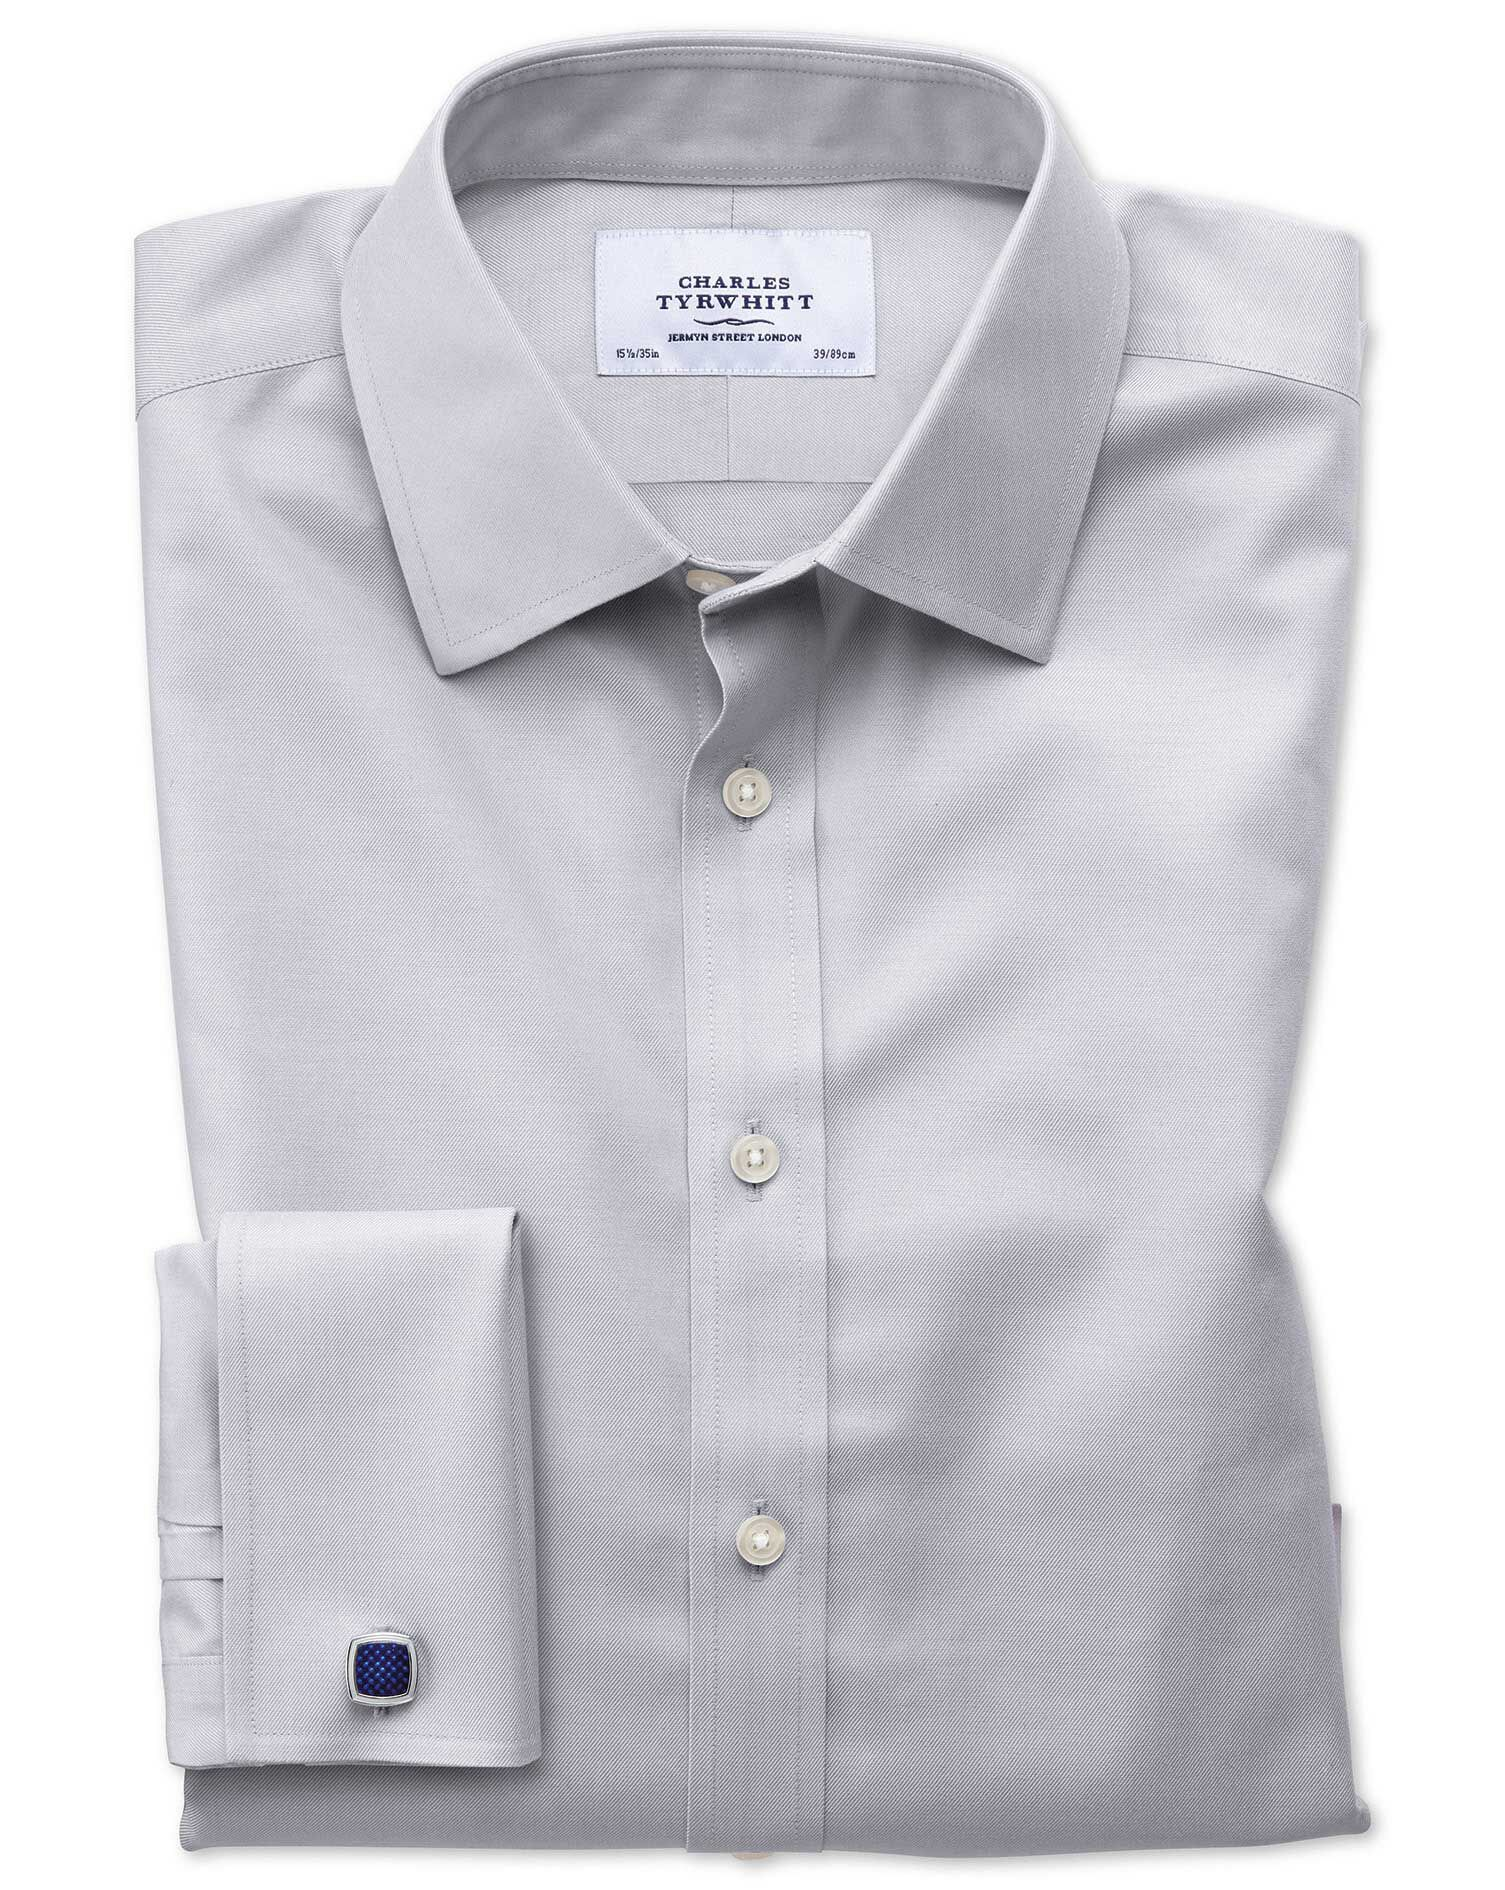 Classic Fit Non-Iron Twill Grey Cotton Formal Shirt Double Cuff Size 17/37 by Charles Tyrwhitt